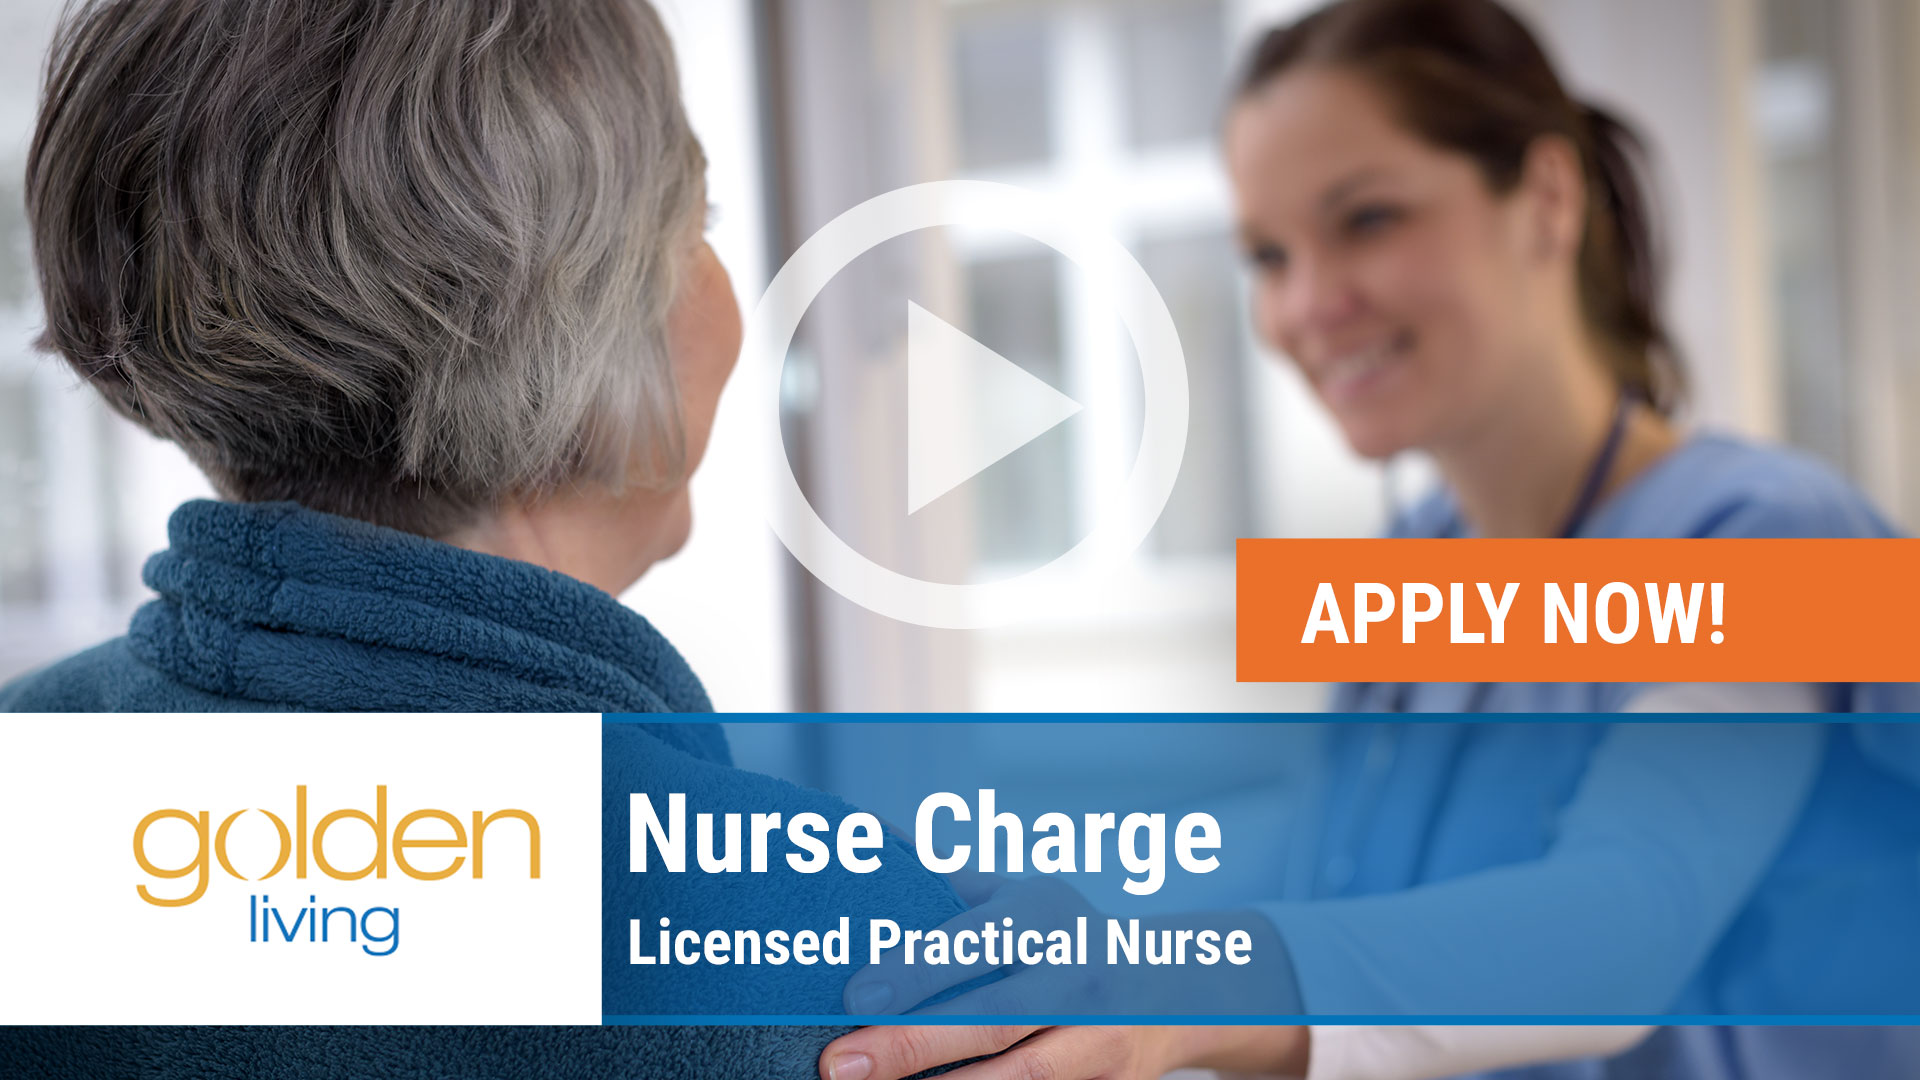 Watch our careers video for available job opening Nurse Charge LPN in Indiana, IN